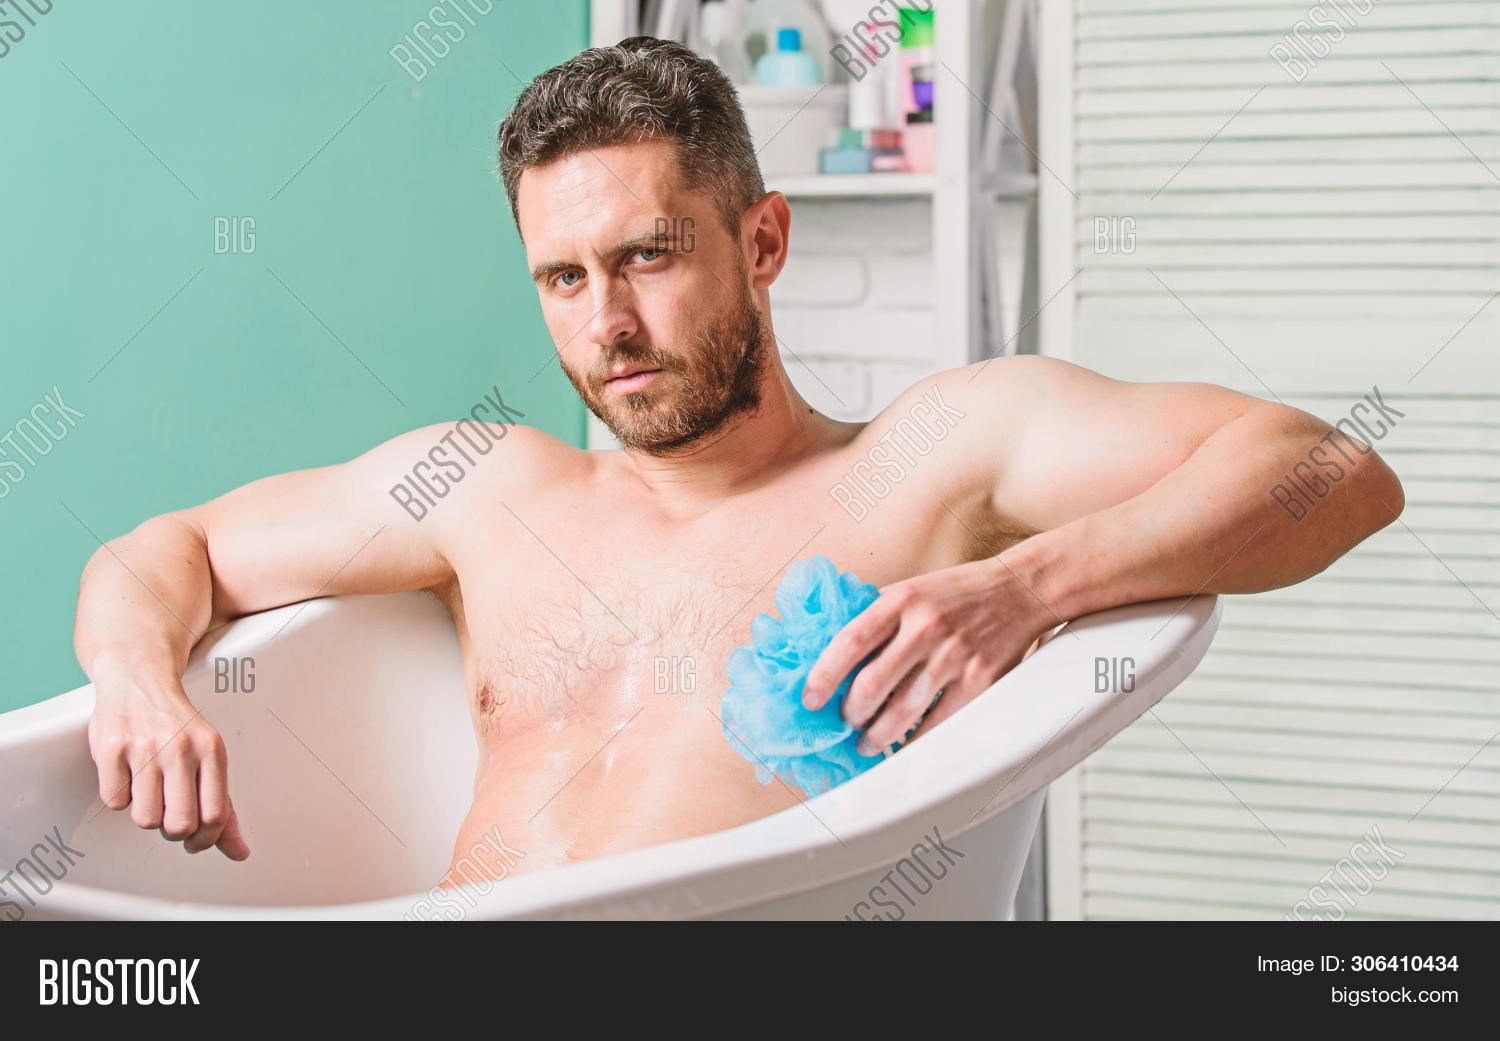 adult,athletic,bathing,bathroom,bathtub,benefit,body,care,caucasian,clean,cleaning,concept,confident,enjoy,enjoyment,handsome,hygiene,hygienic,lotion,macho,man,masculine,muscular,naked,nervous,parts,peeling,personal,pleasure,procedure,relaxation,relaxing,sexy,sit,skin,system,take,torso,total